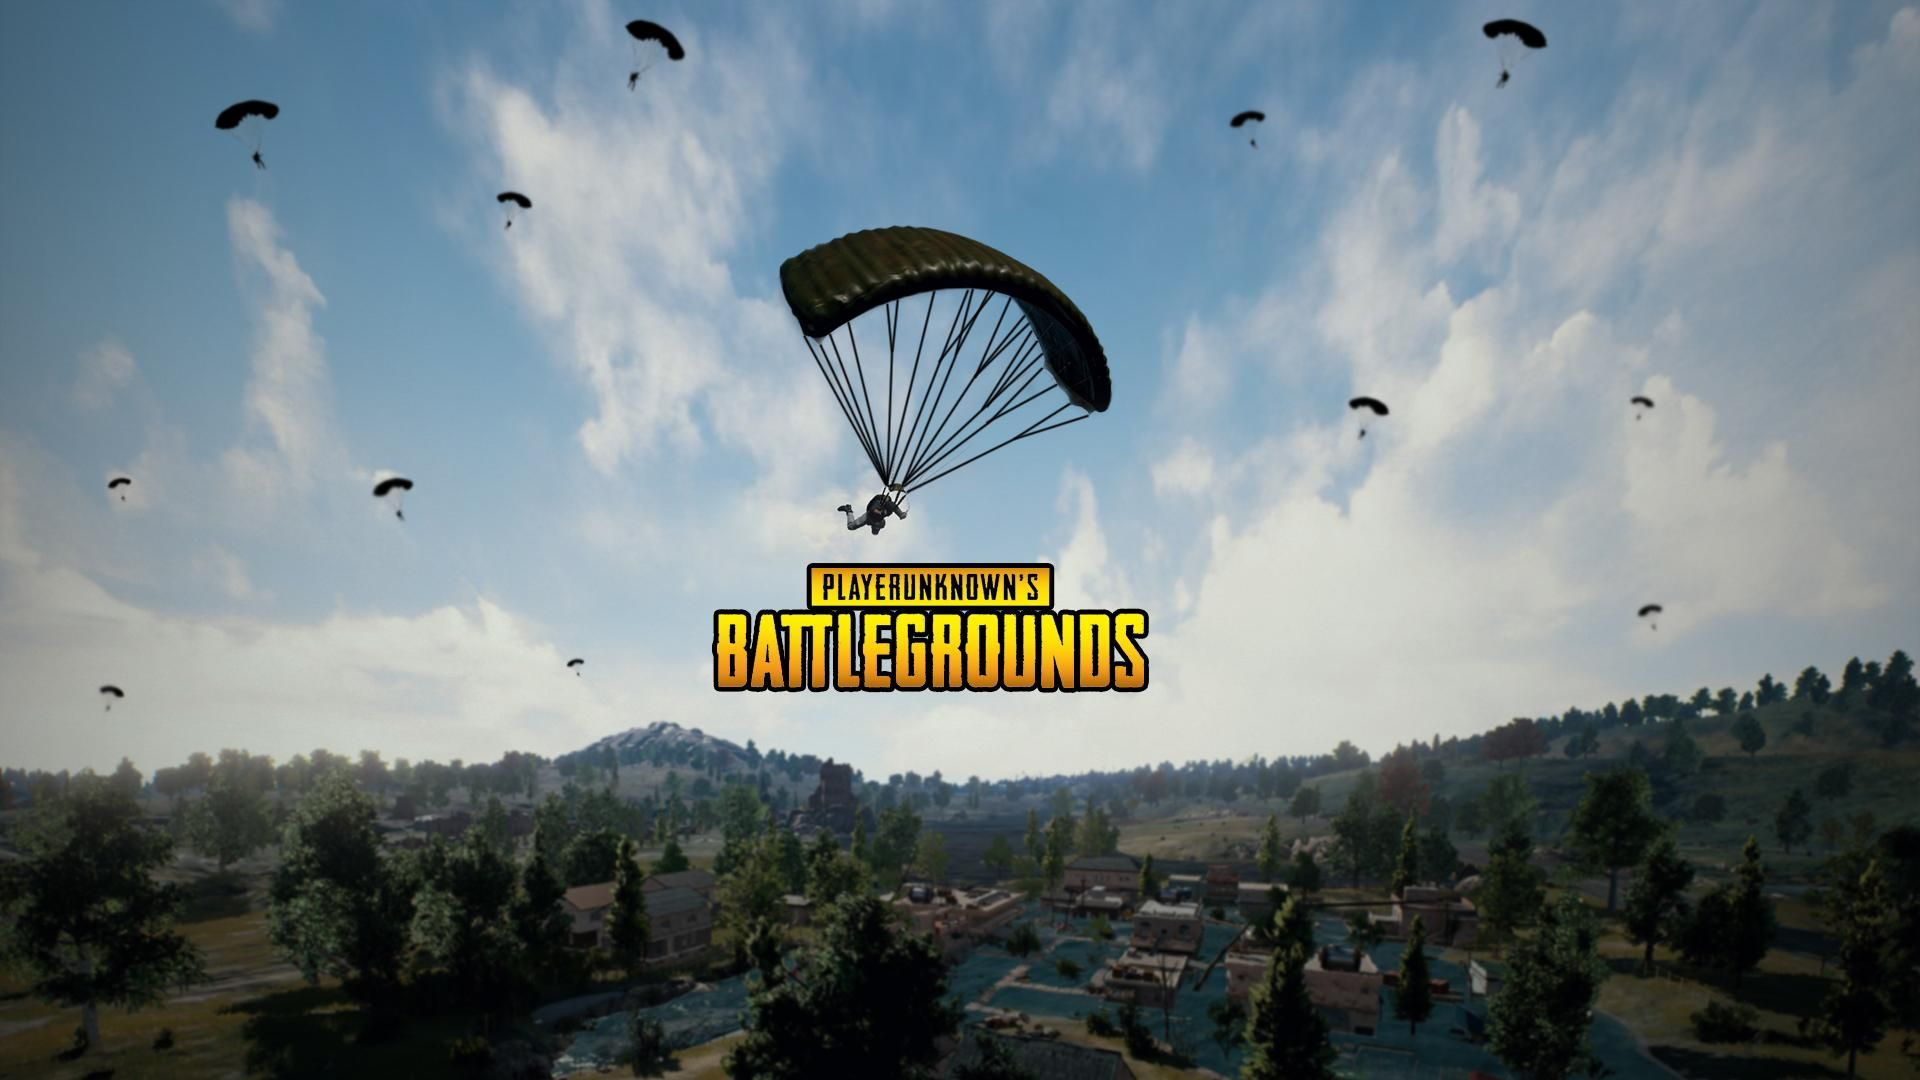 Pubg Wallpaper Hd 1080p For Mobile